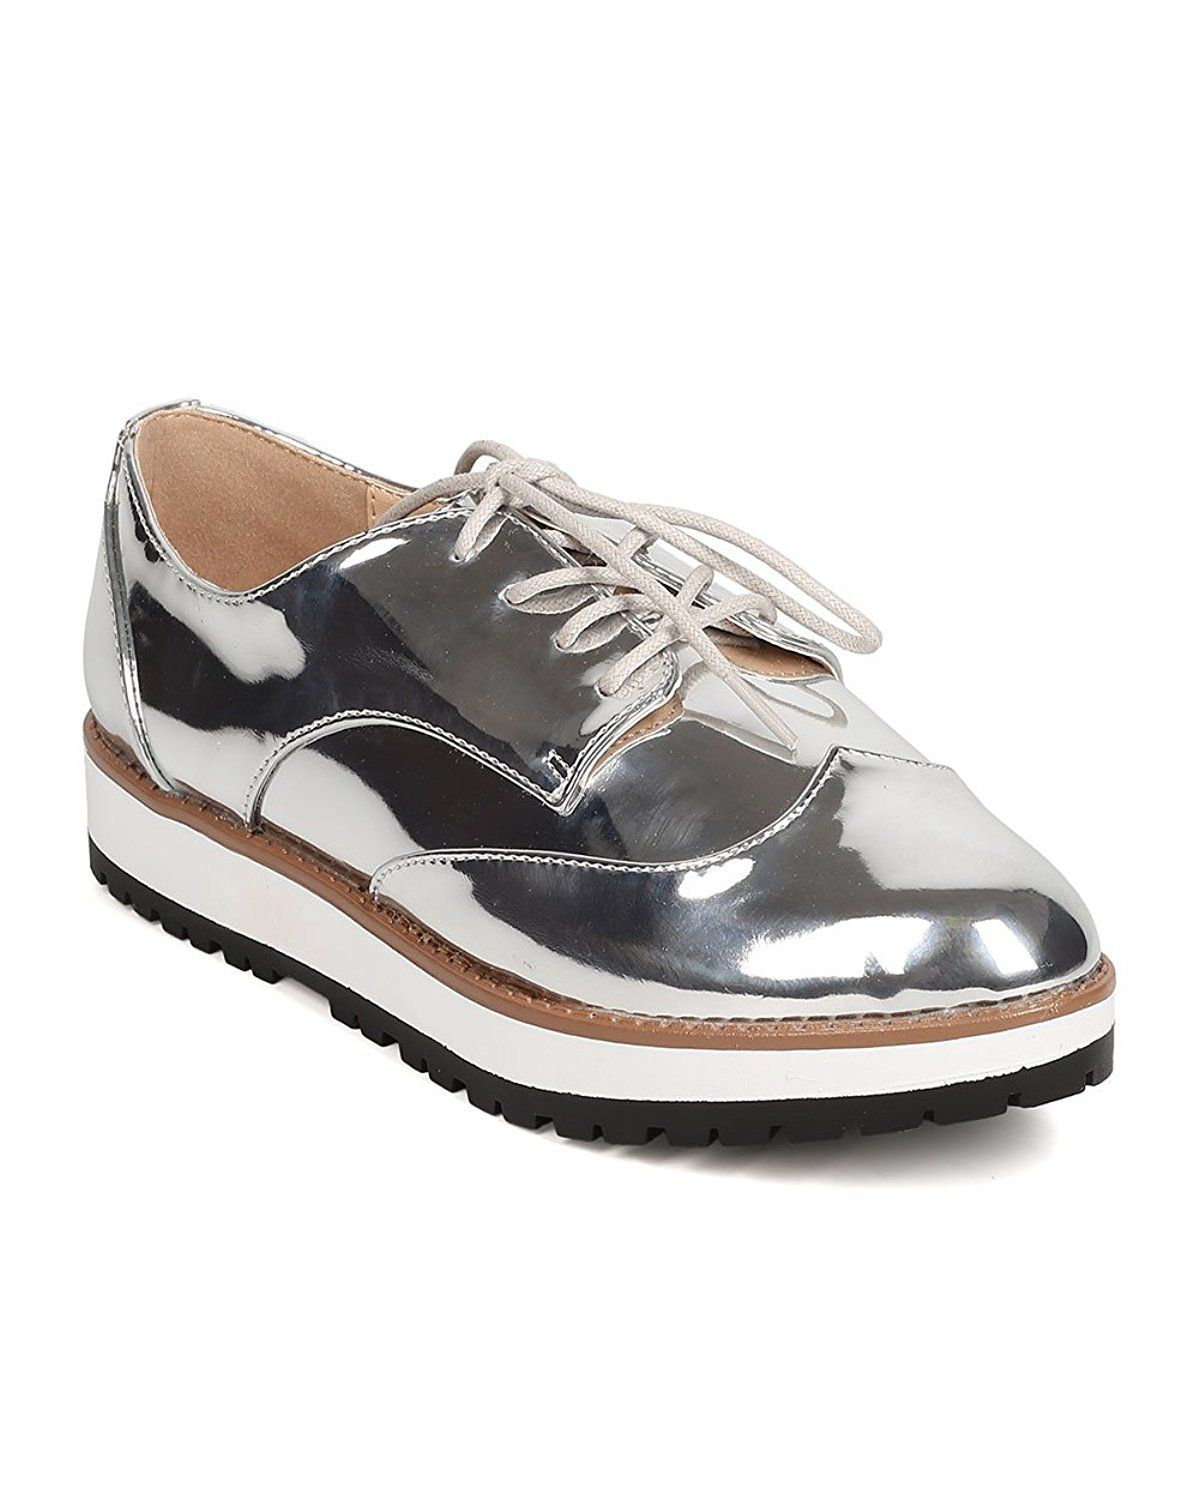 36b814b7a6be Qupid FD75 Women Metallic Leatherette Lace Up Spectator Loafer - Silver     Details can be